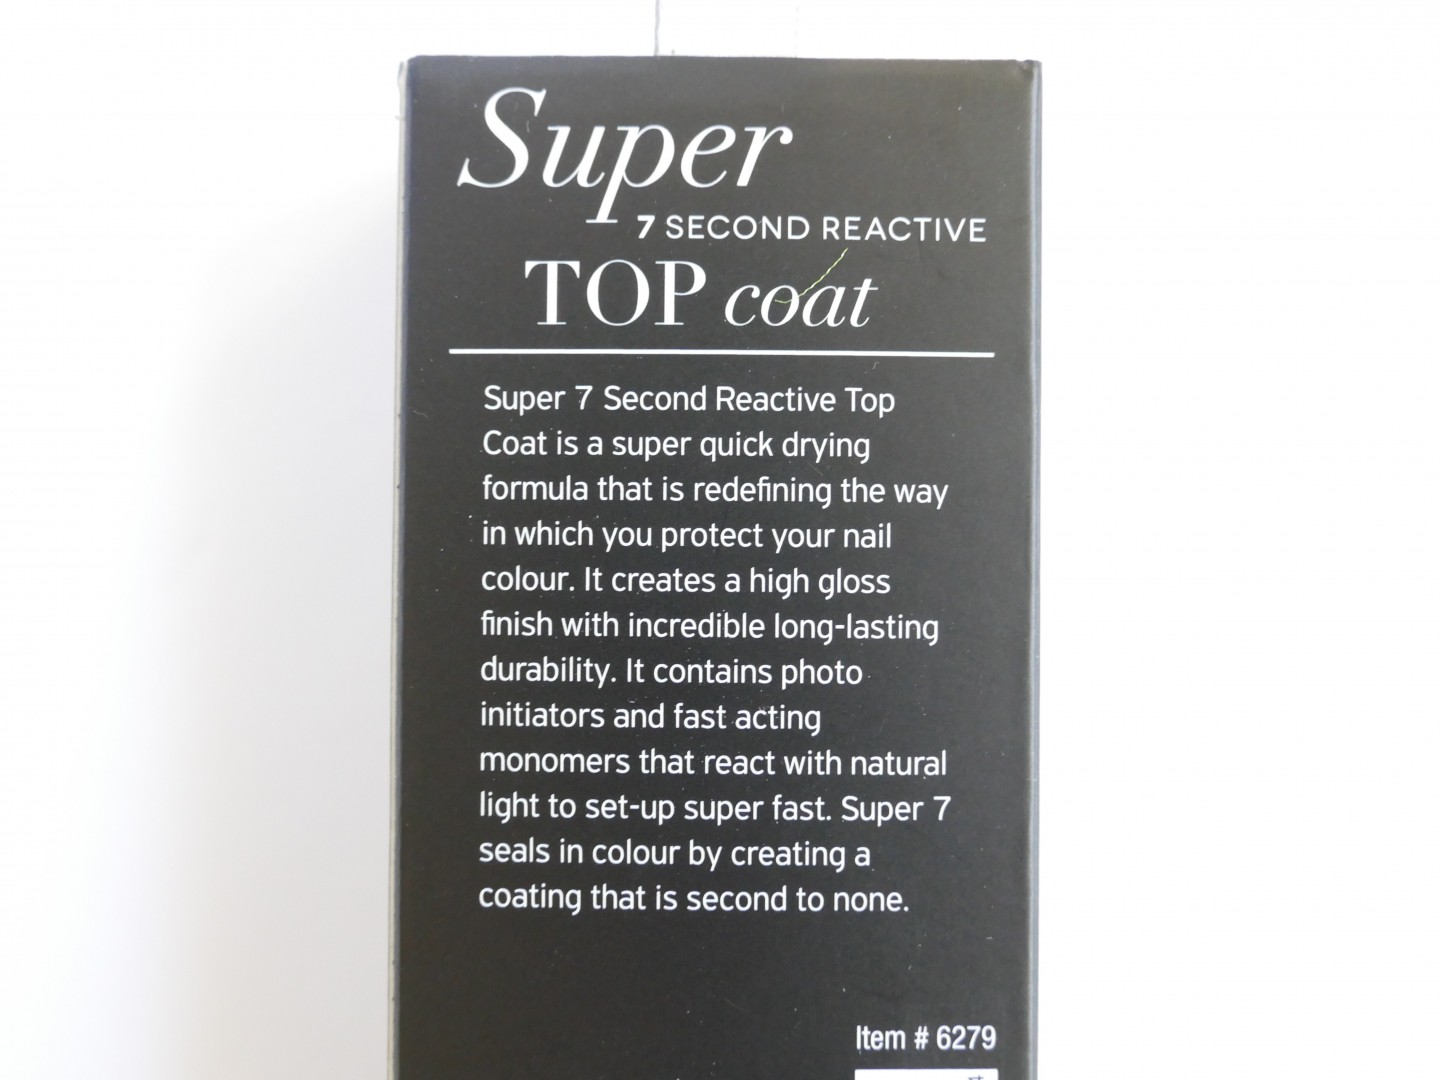 Super 7 Second REactive top coat